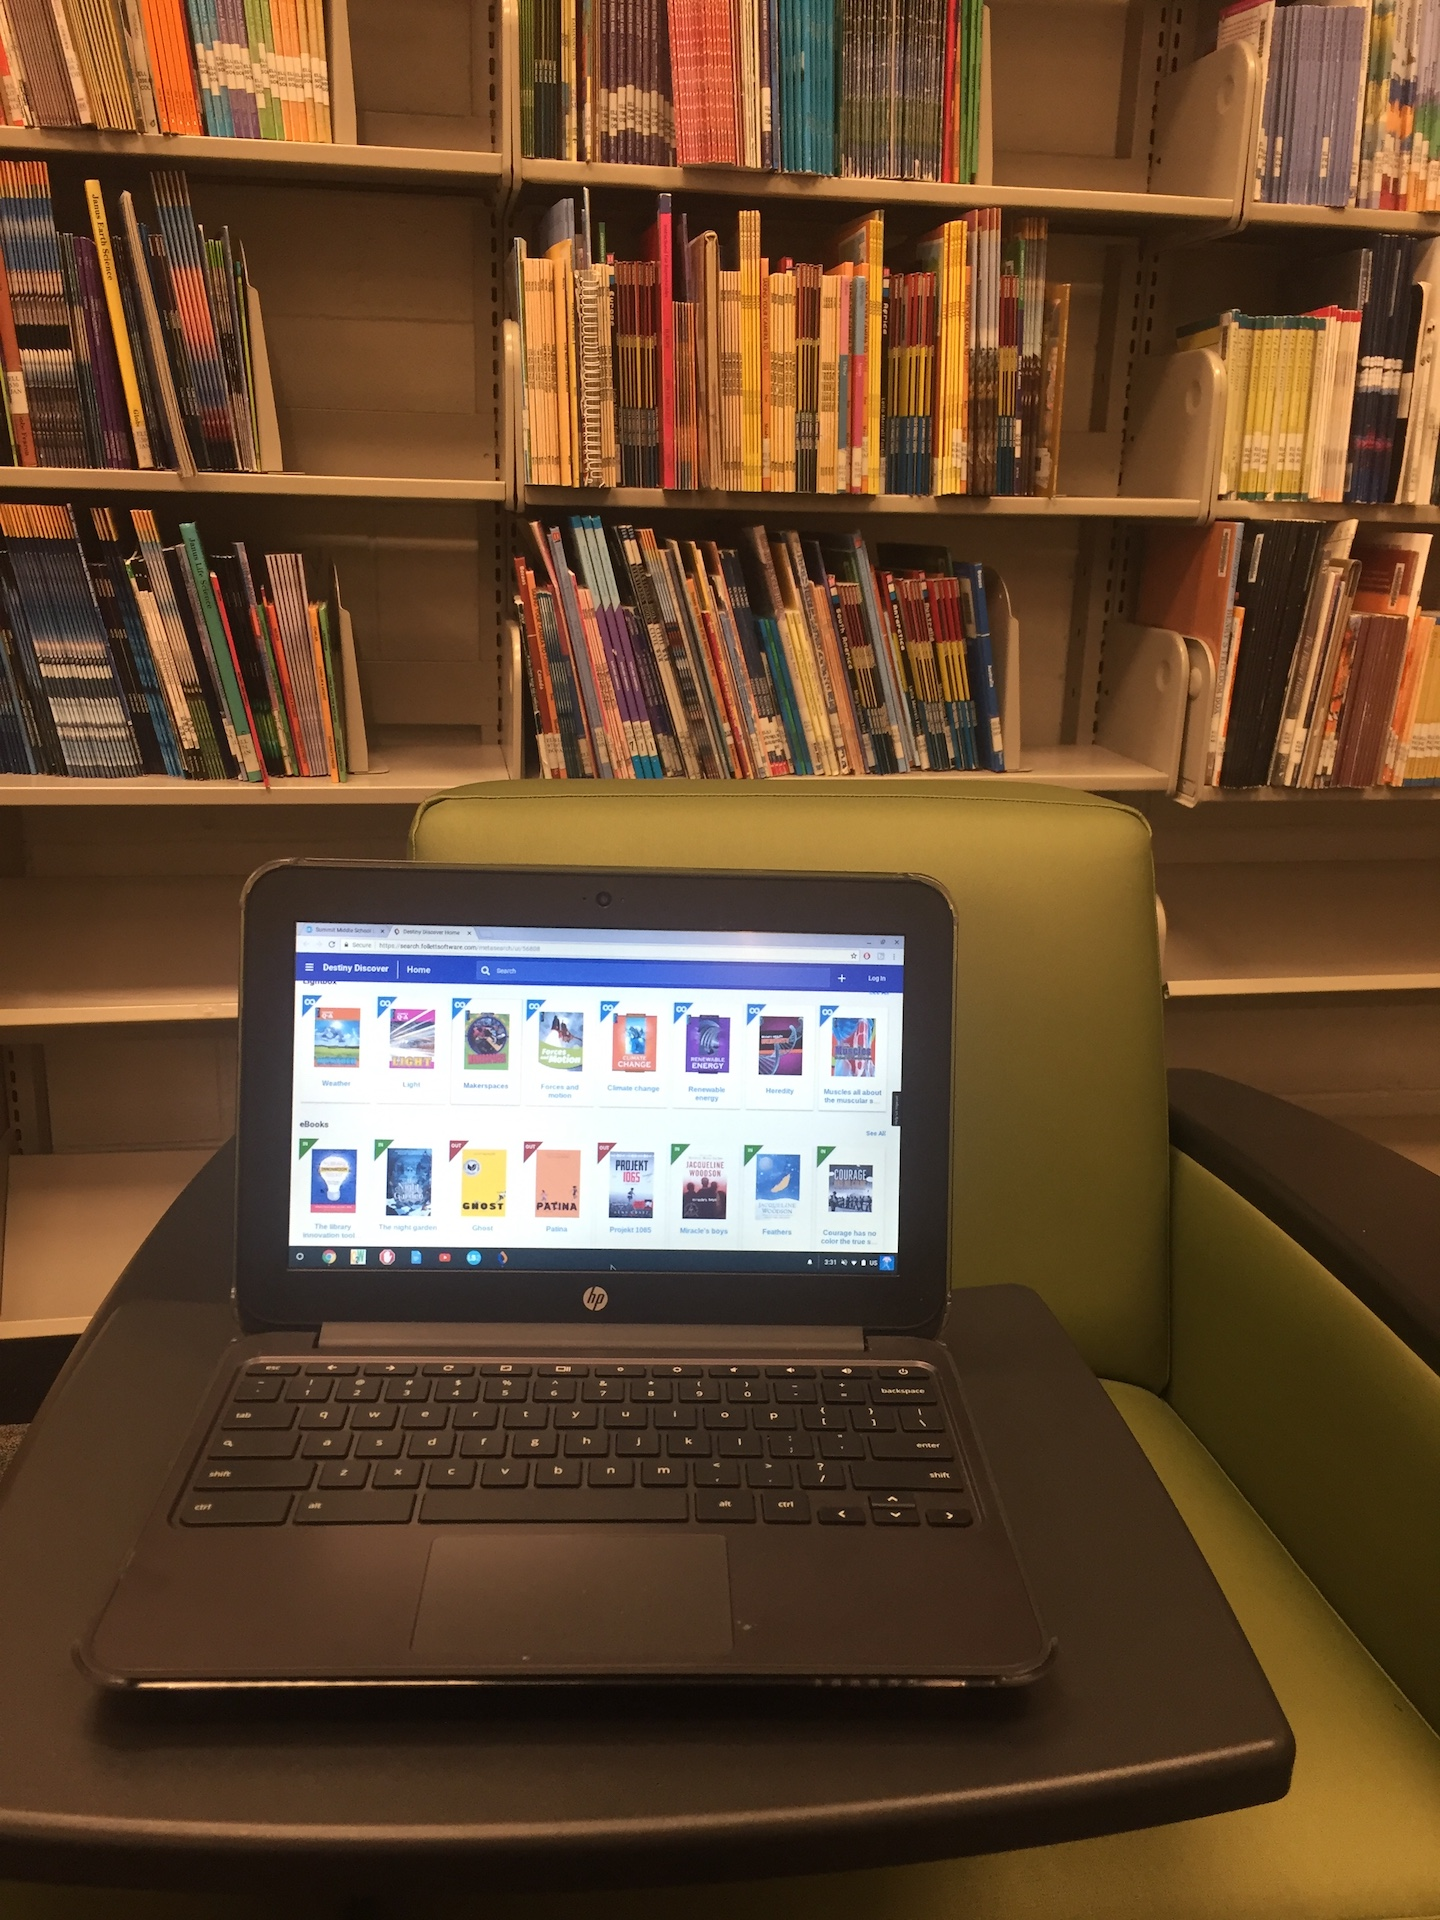 Find an eBook to Read on Your Chromebook